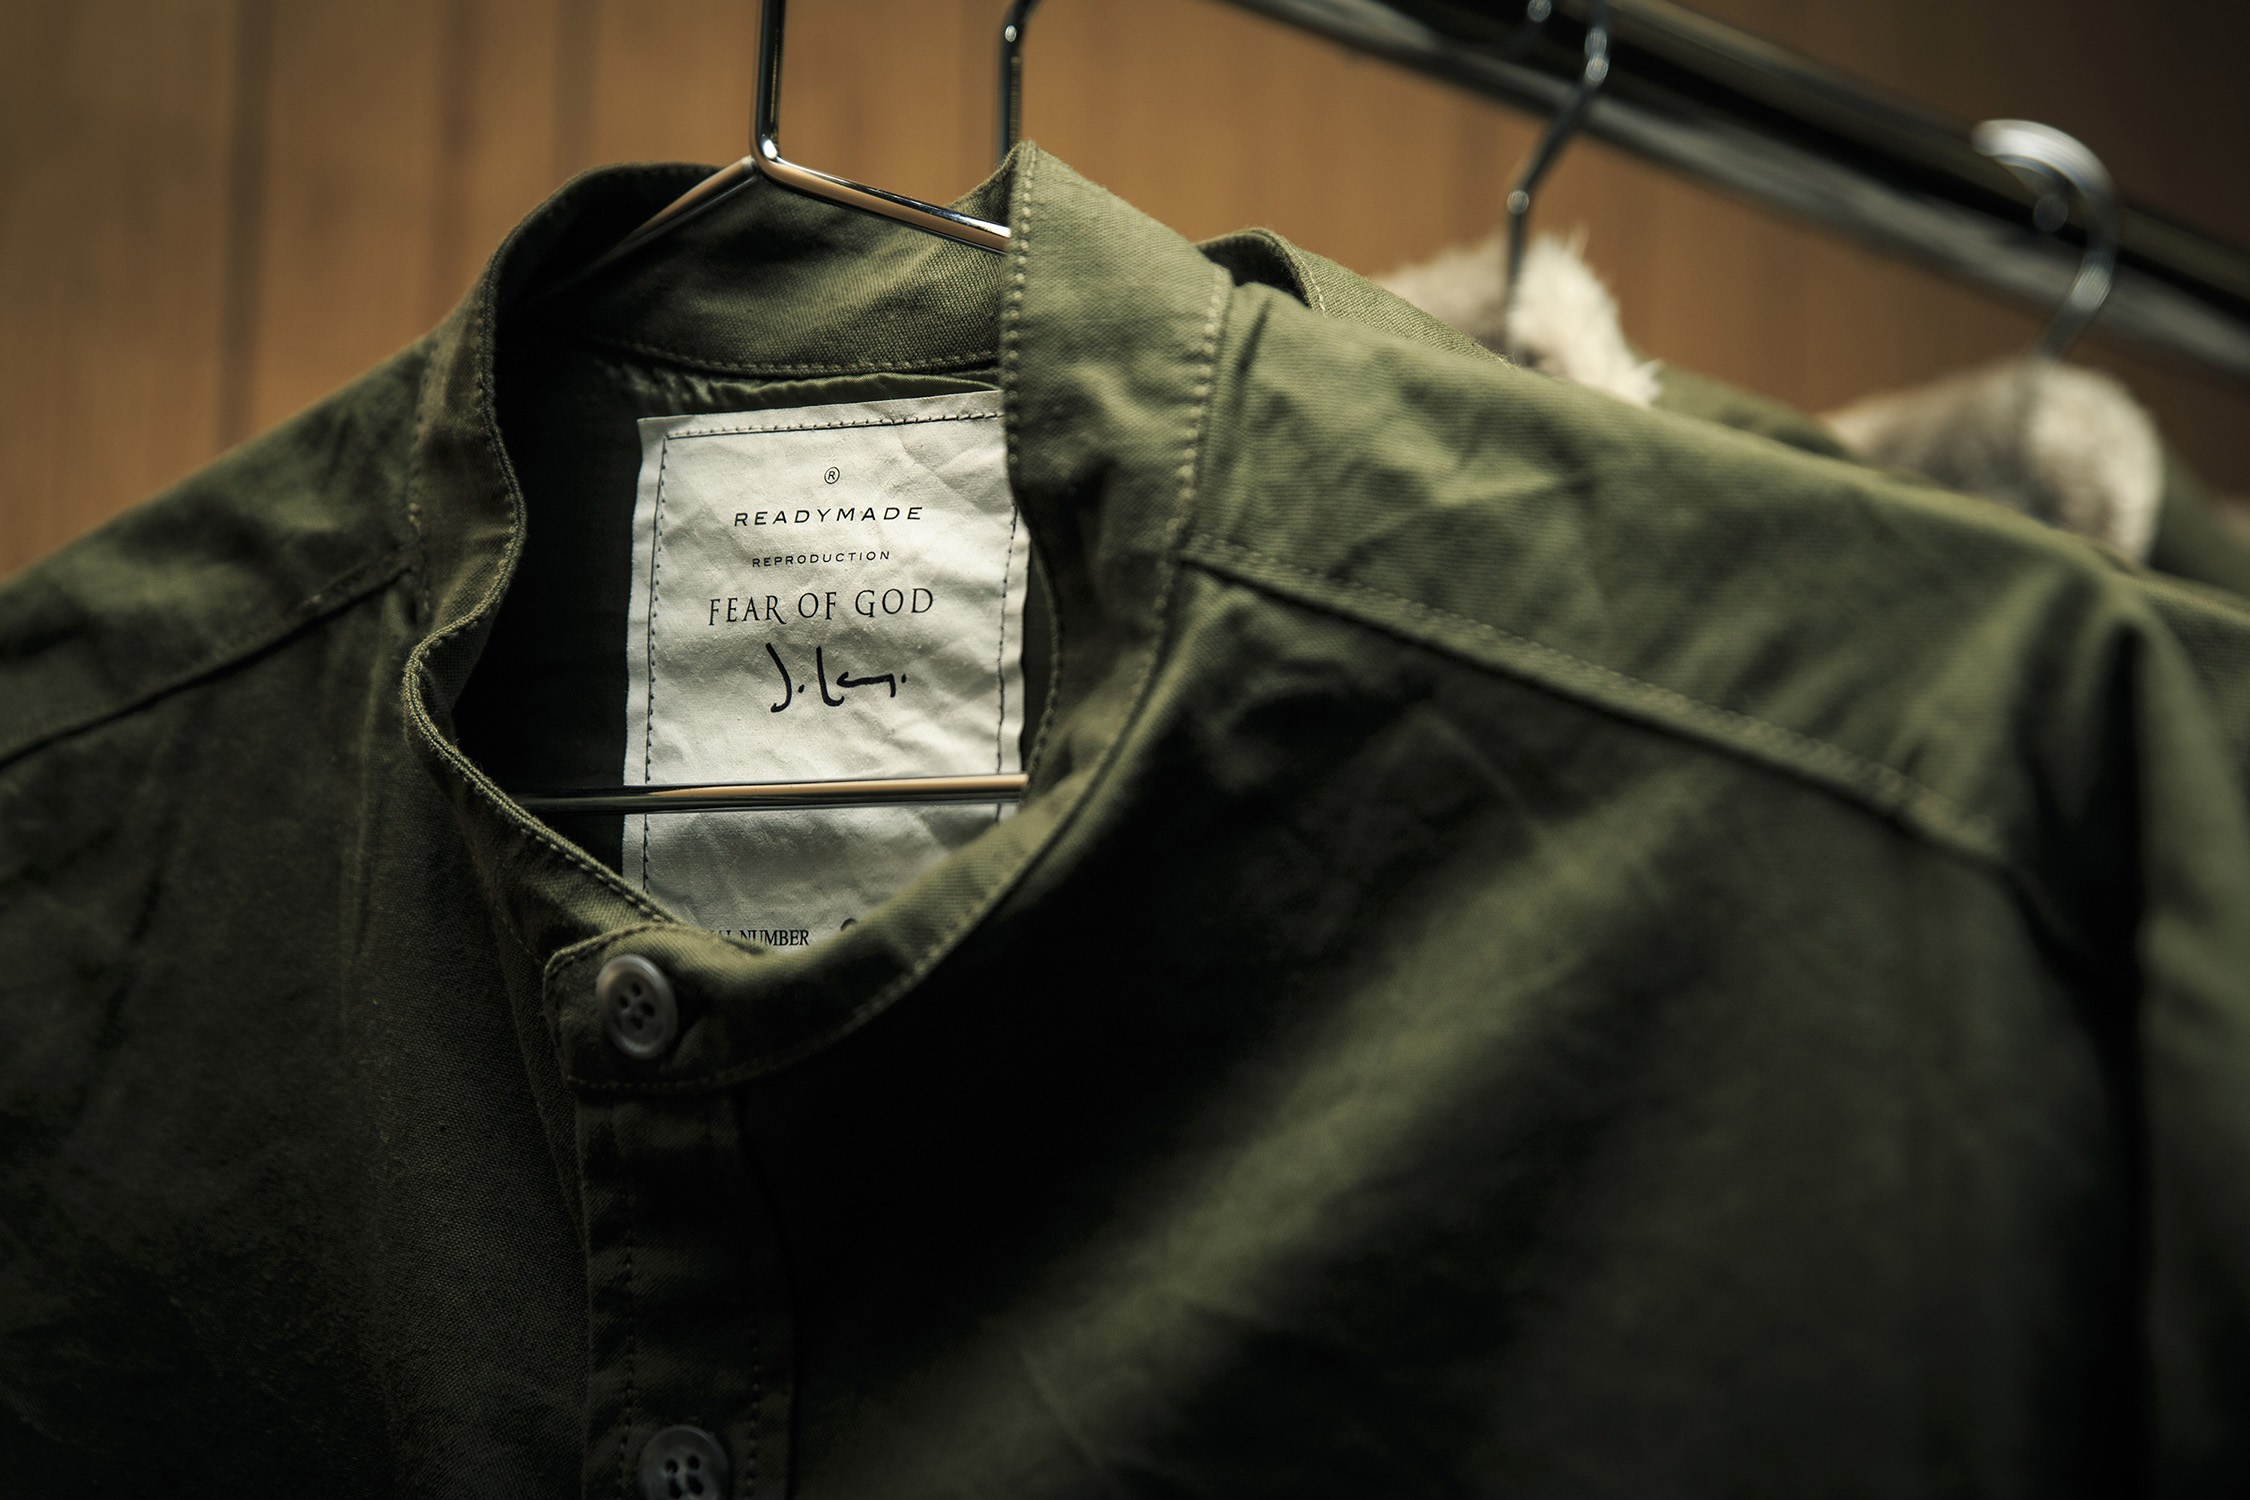 fear-of-god-pop-up-los-angeles-maxfield-8